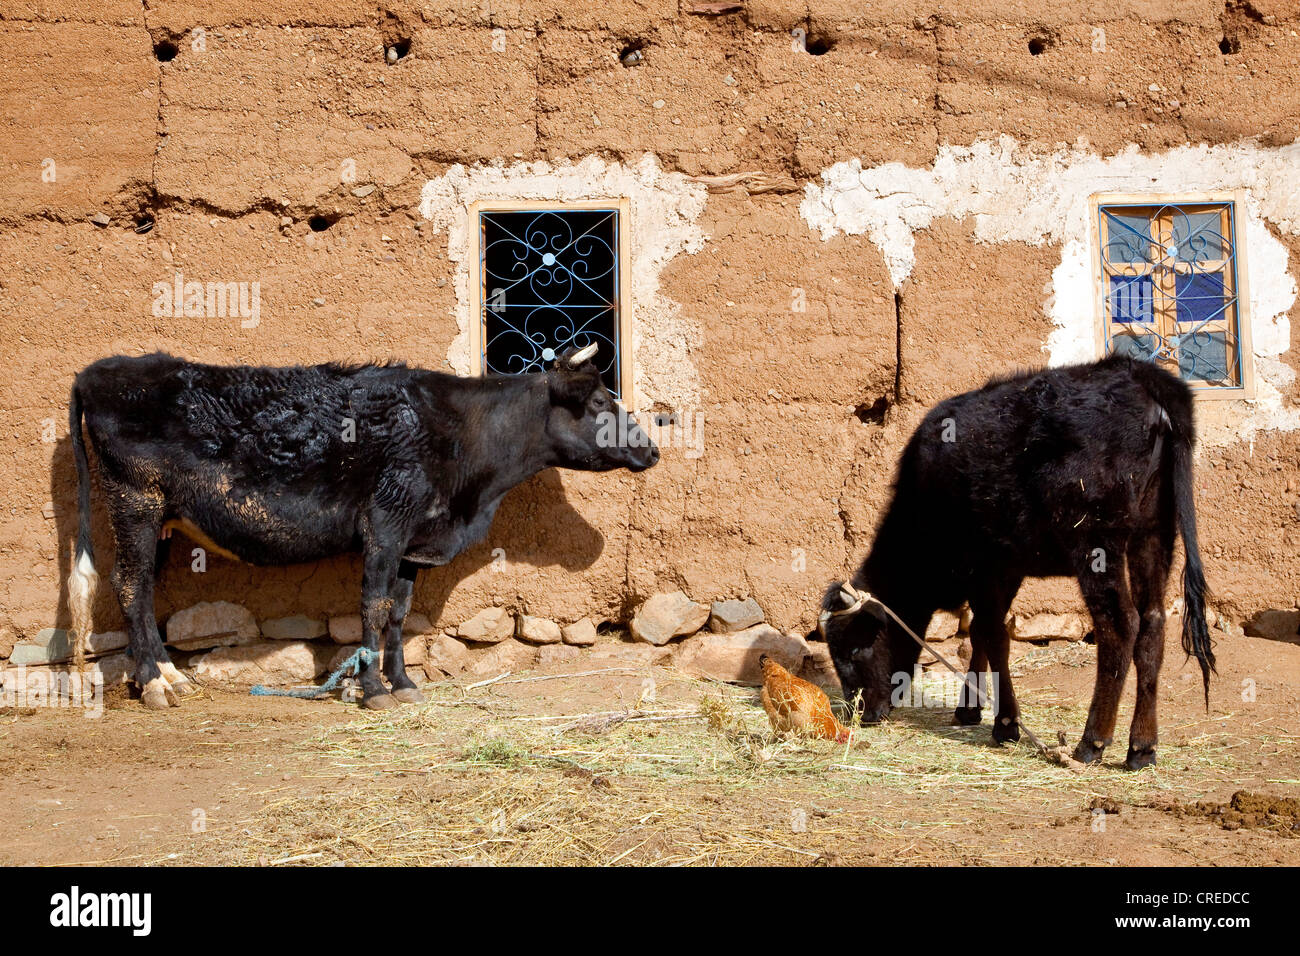 Cows standing outside a mud-brick house in Telouet, High Atlas Mountains near Ouarzazate, Morocco, Africa - Stock Image